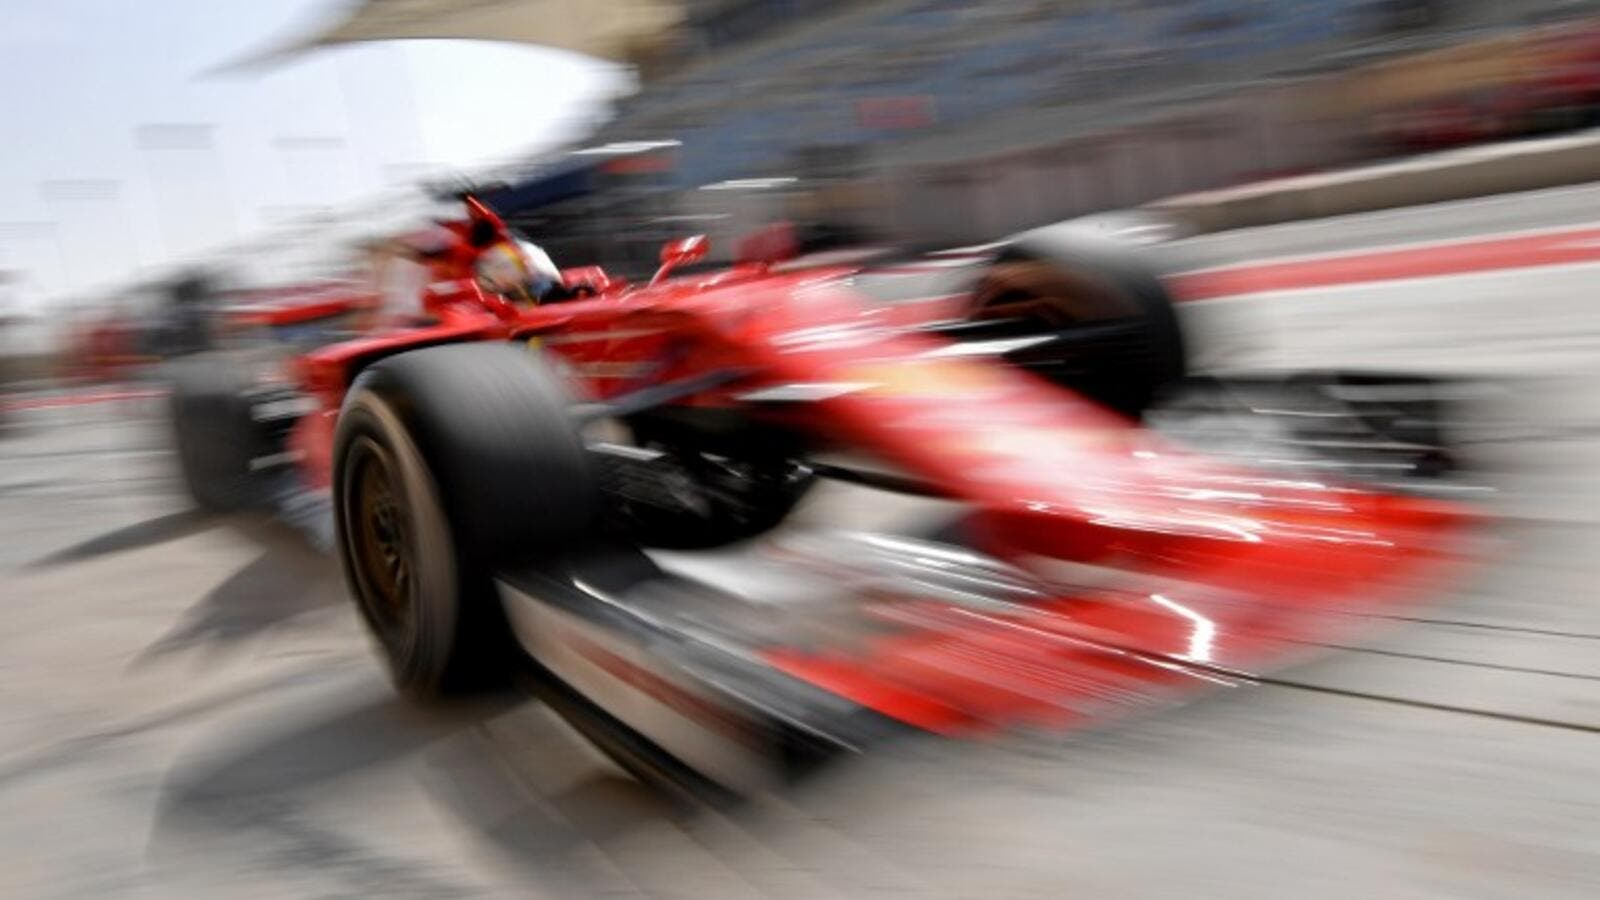 Vettel beat Hamilton for first place in Australia while finishing second behind him at the second race in China.